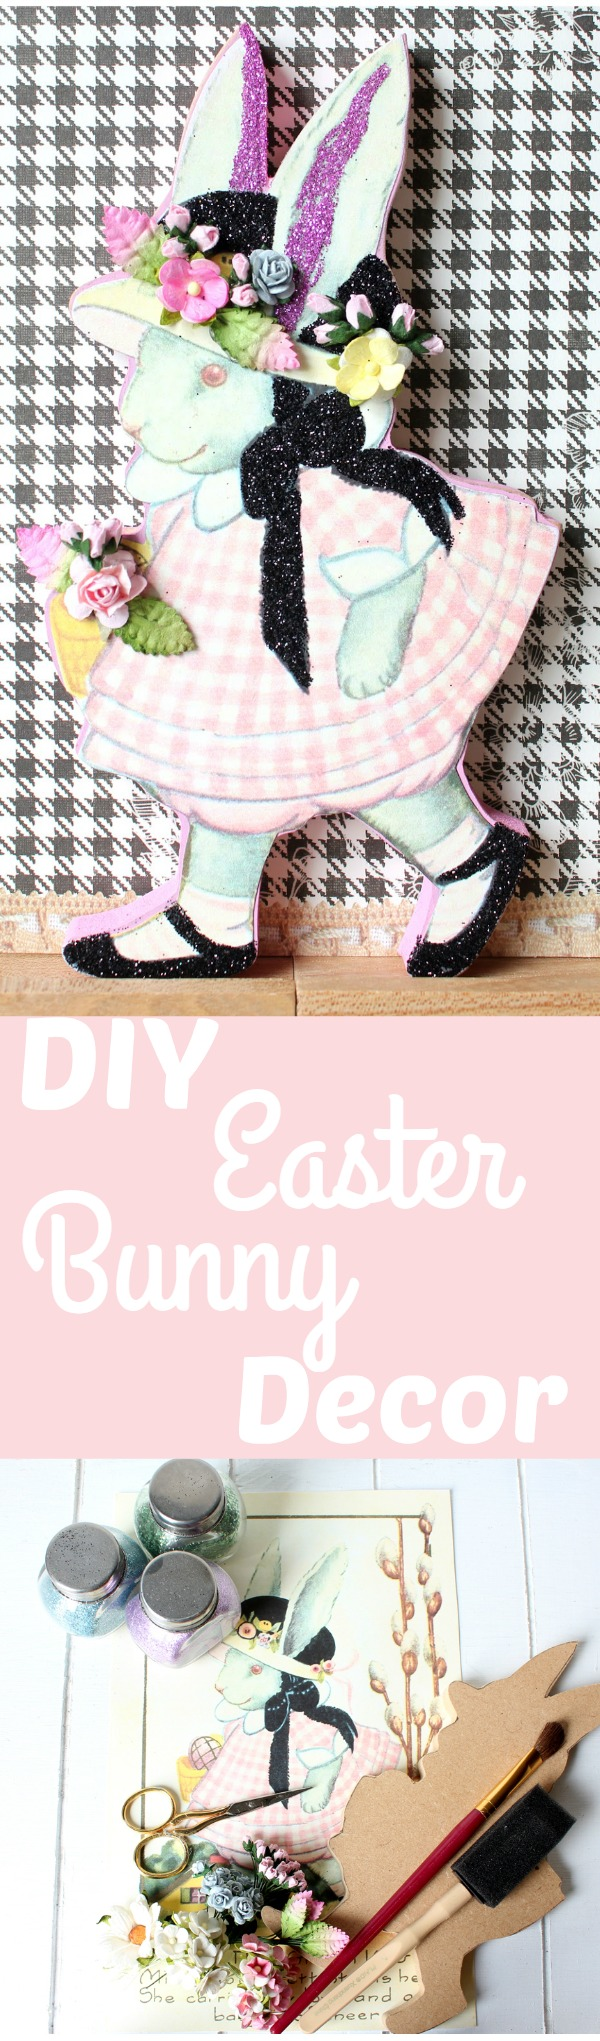 DIY Easter Bunny Decor - The Graphics Fairy